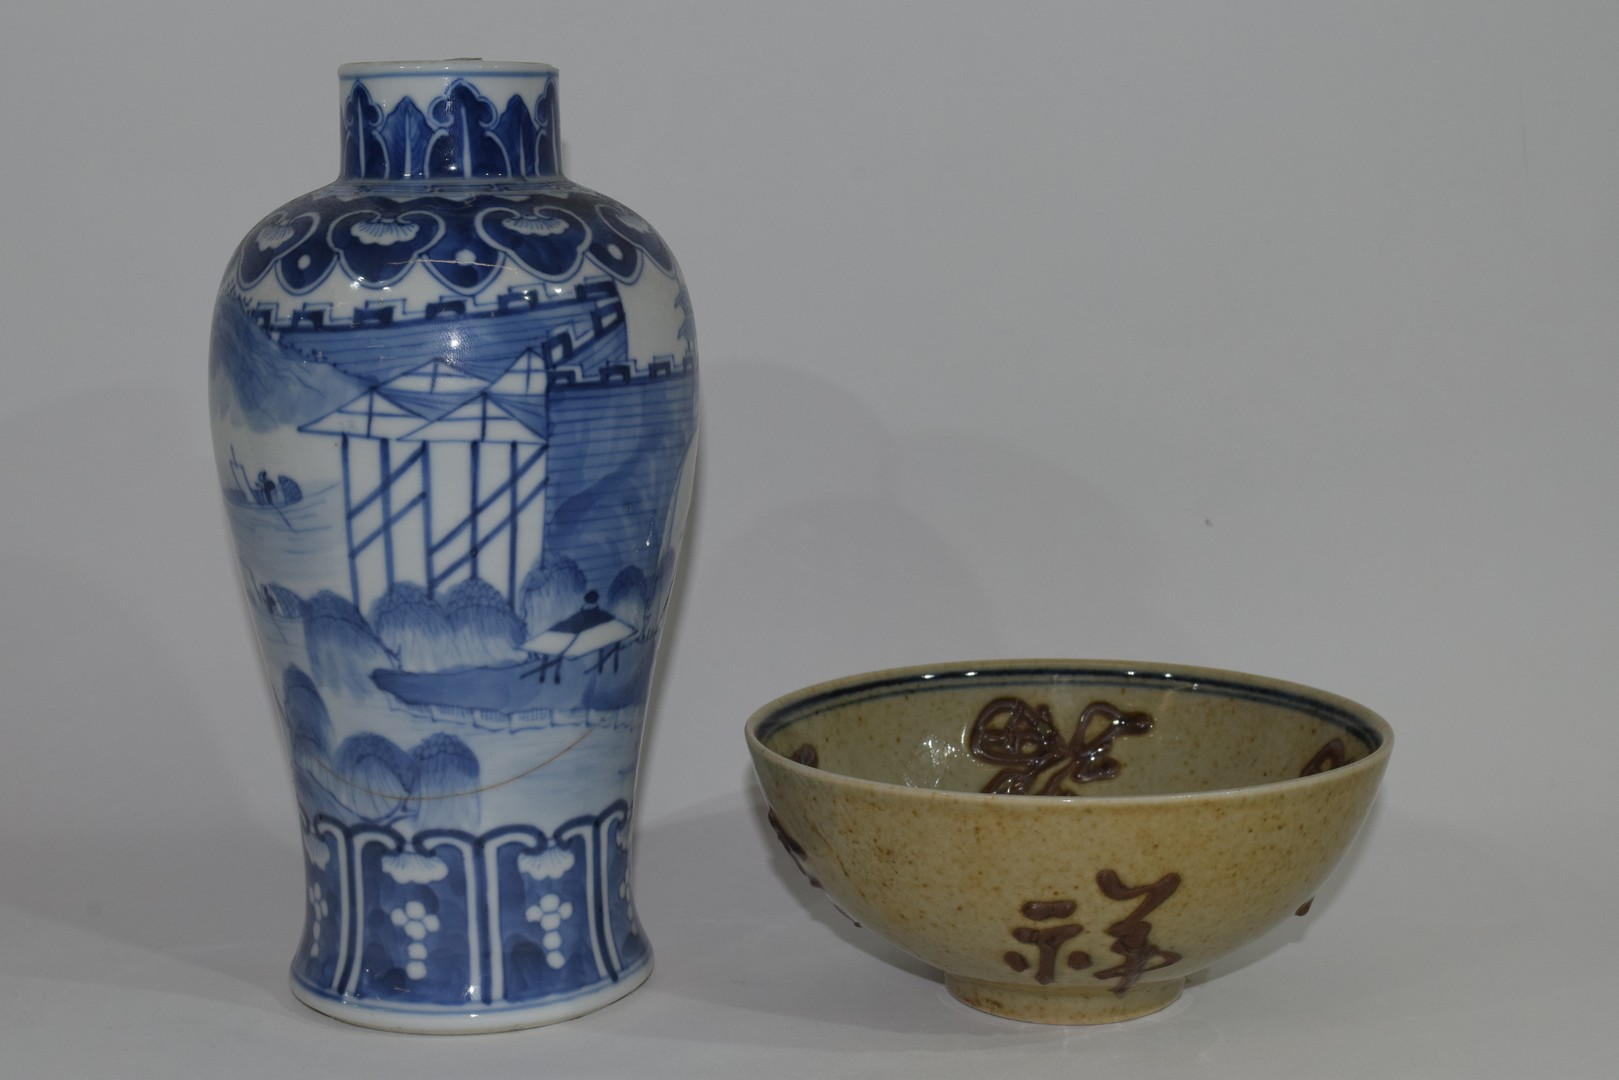 19th century Chinese porcelain bowl - Image 3 of 17